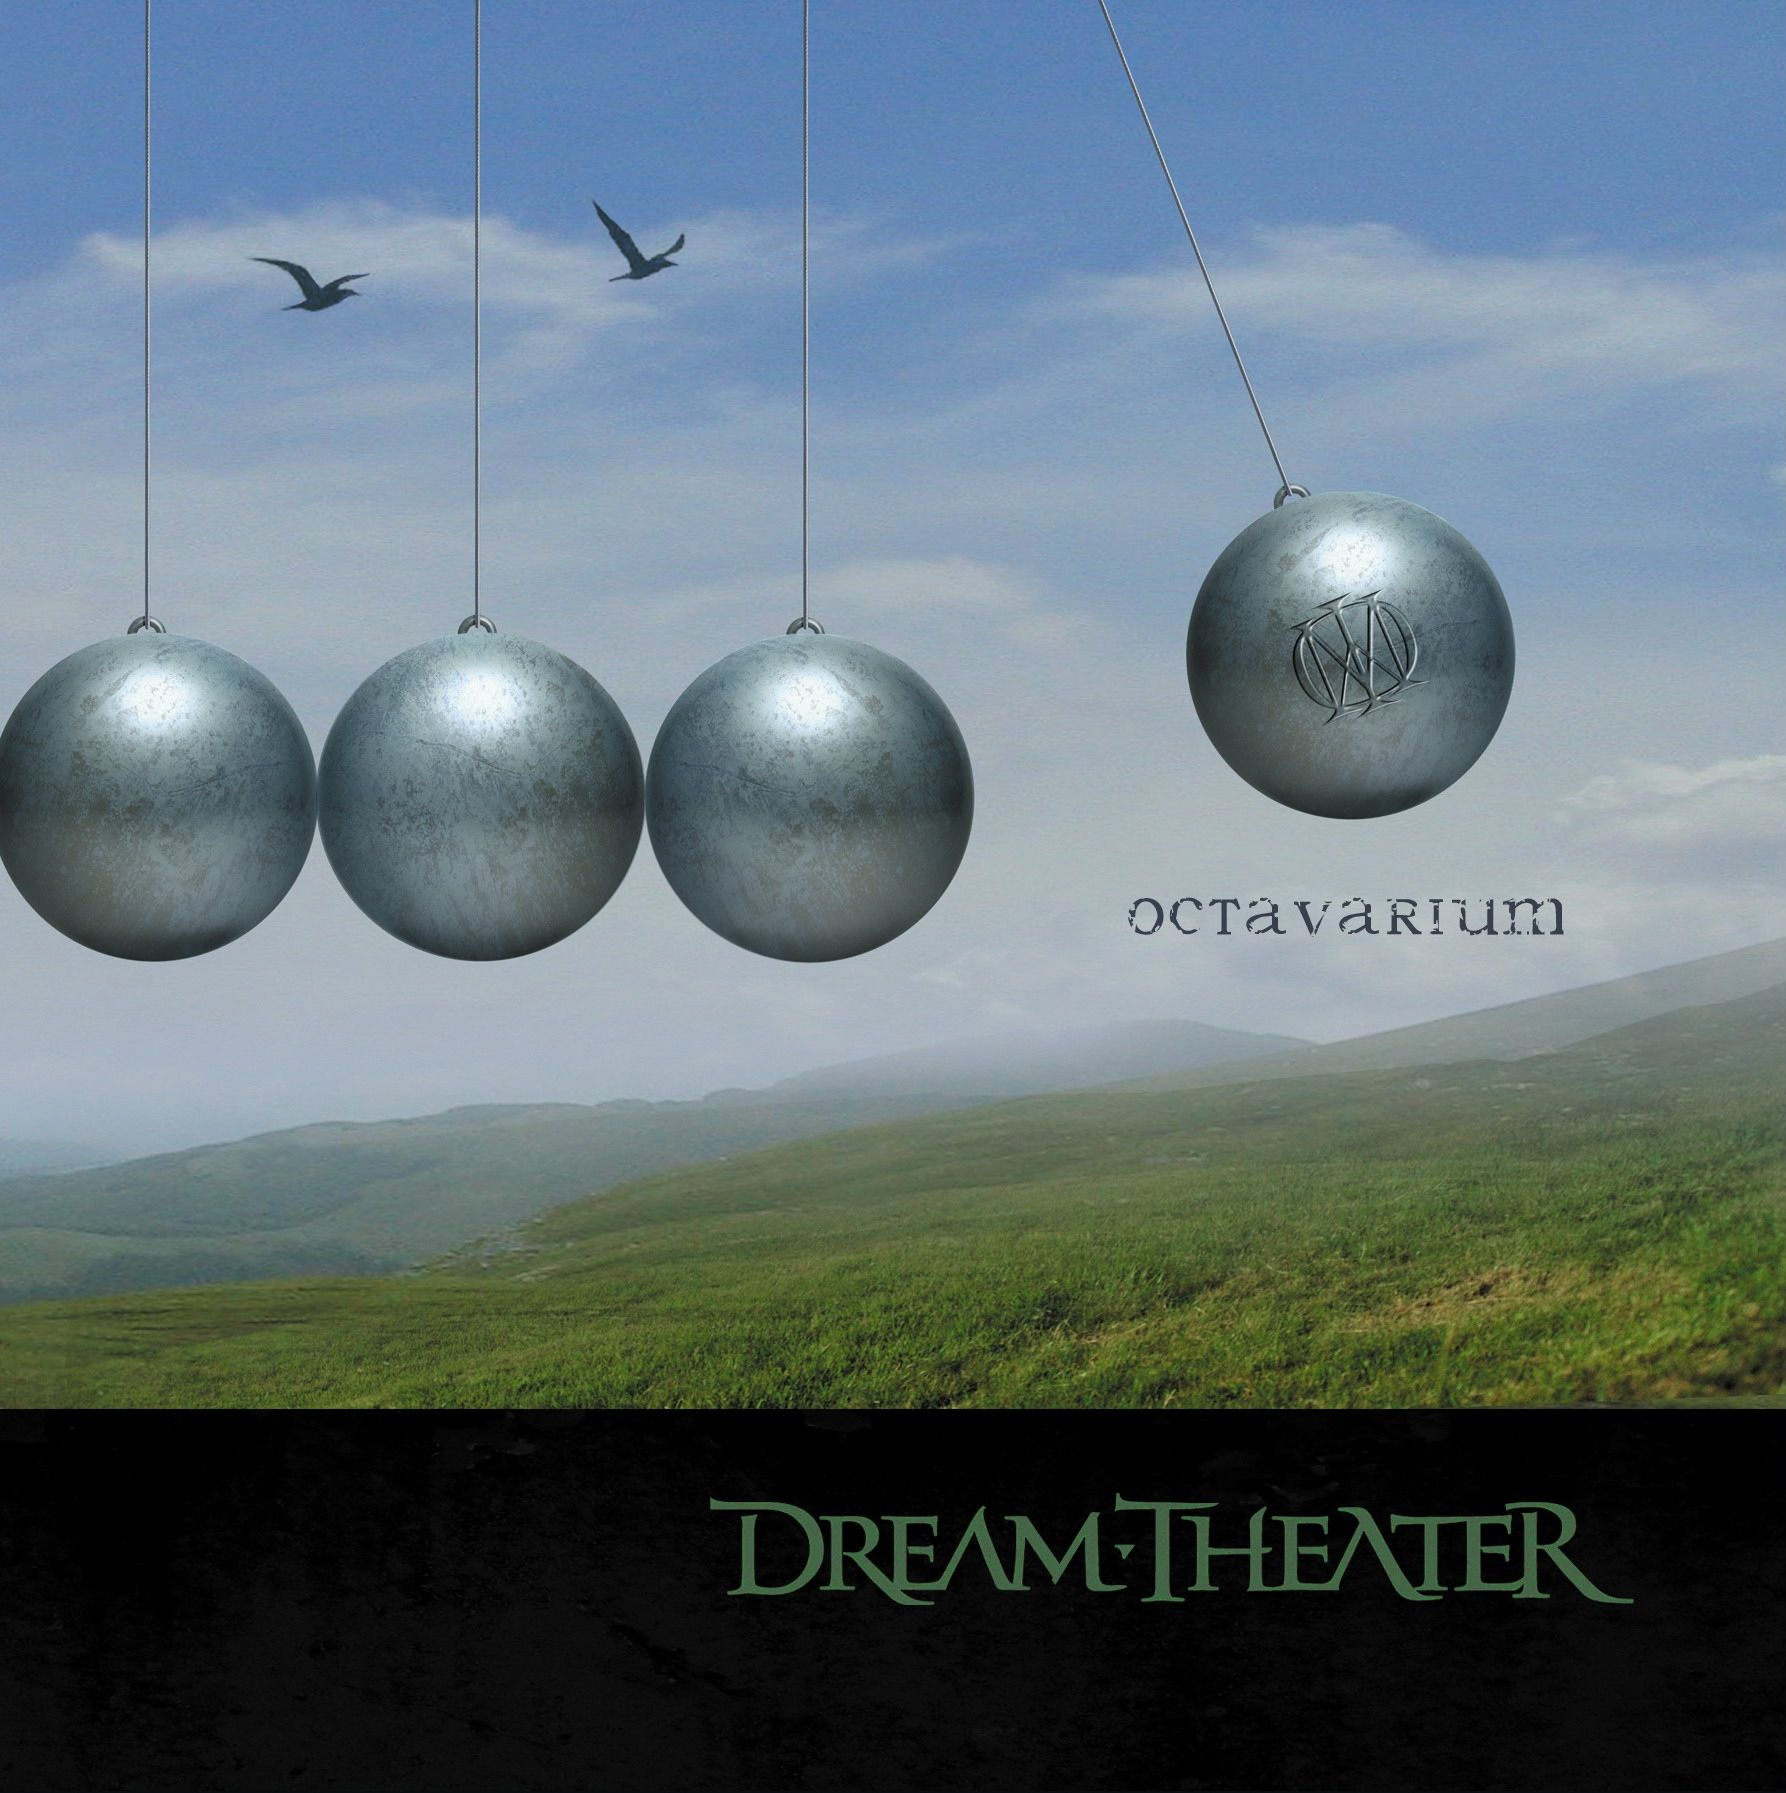 Dream Theater - Octavarium album cover